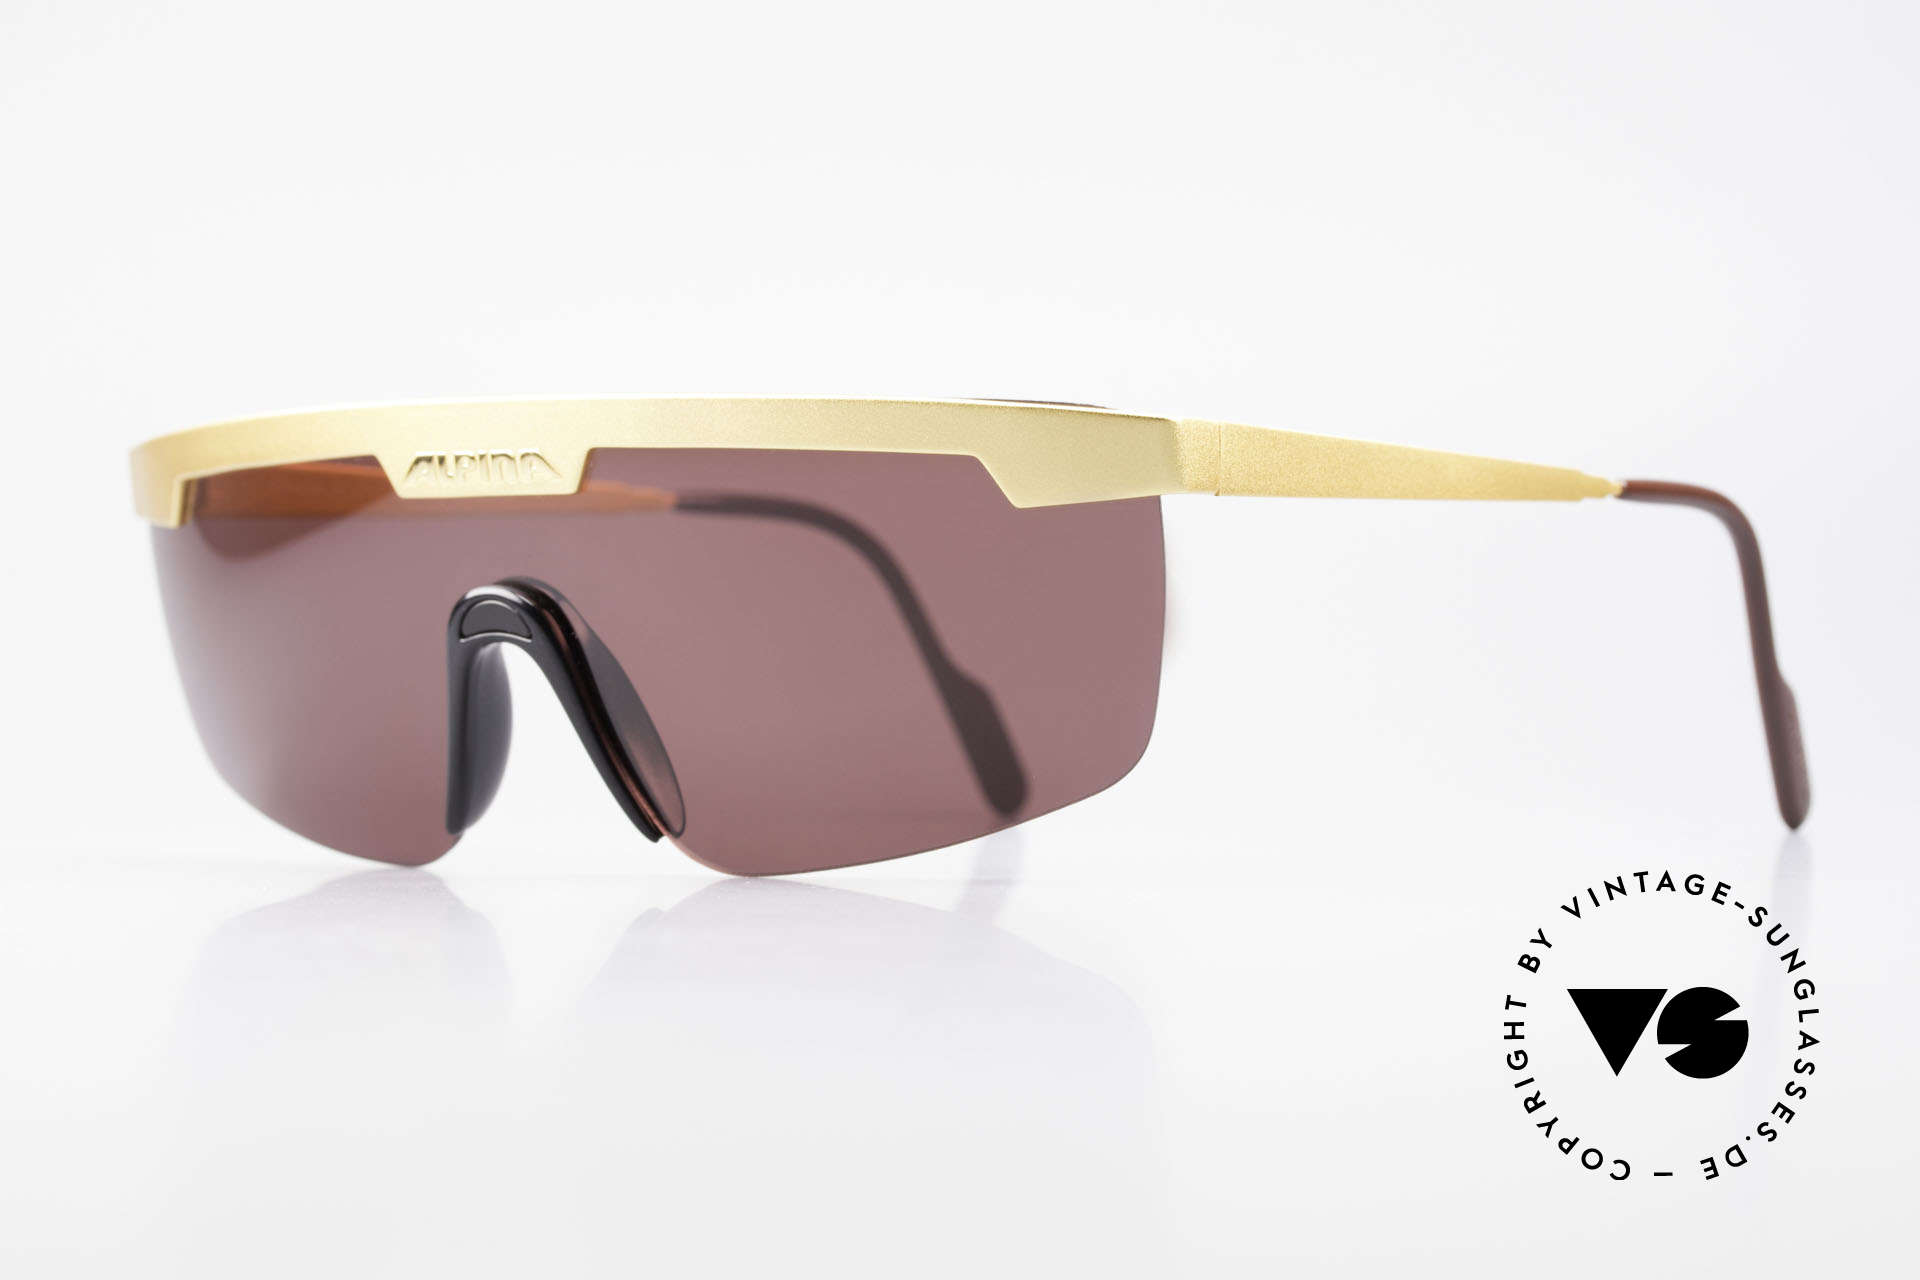 Alpina M57 Vintage Shades Panorama View, best 'W.Germany' quality & pleasantly to wear, Made for Men and Women